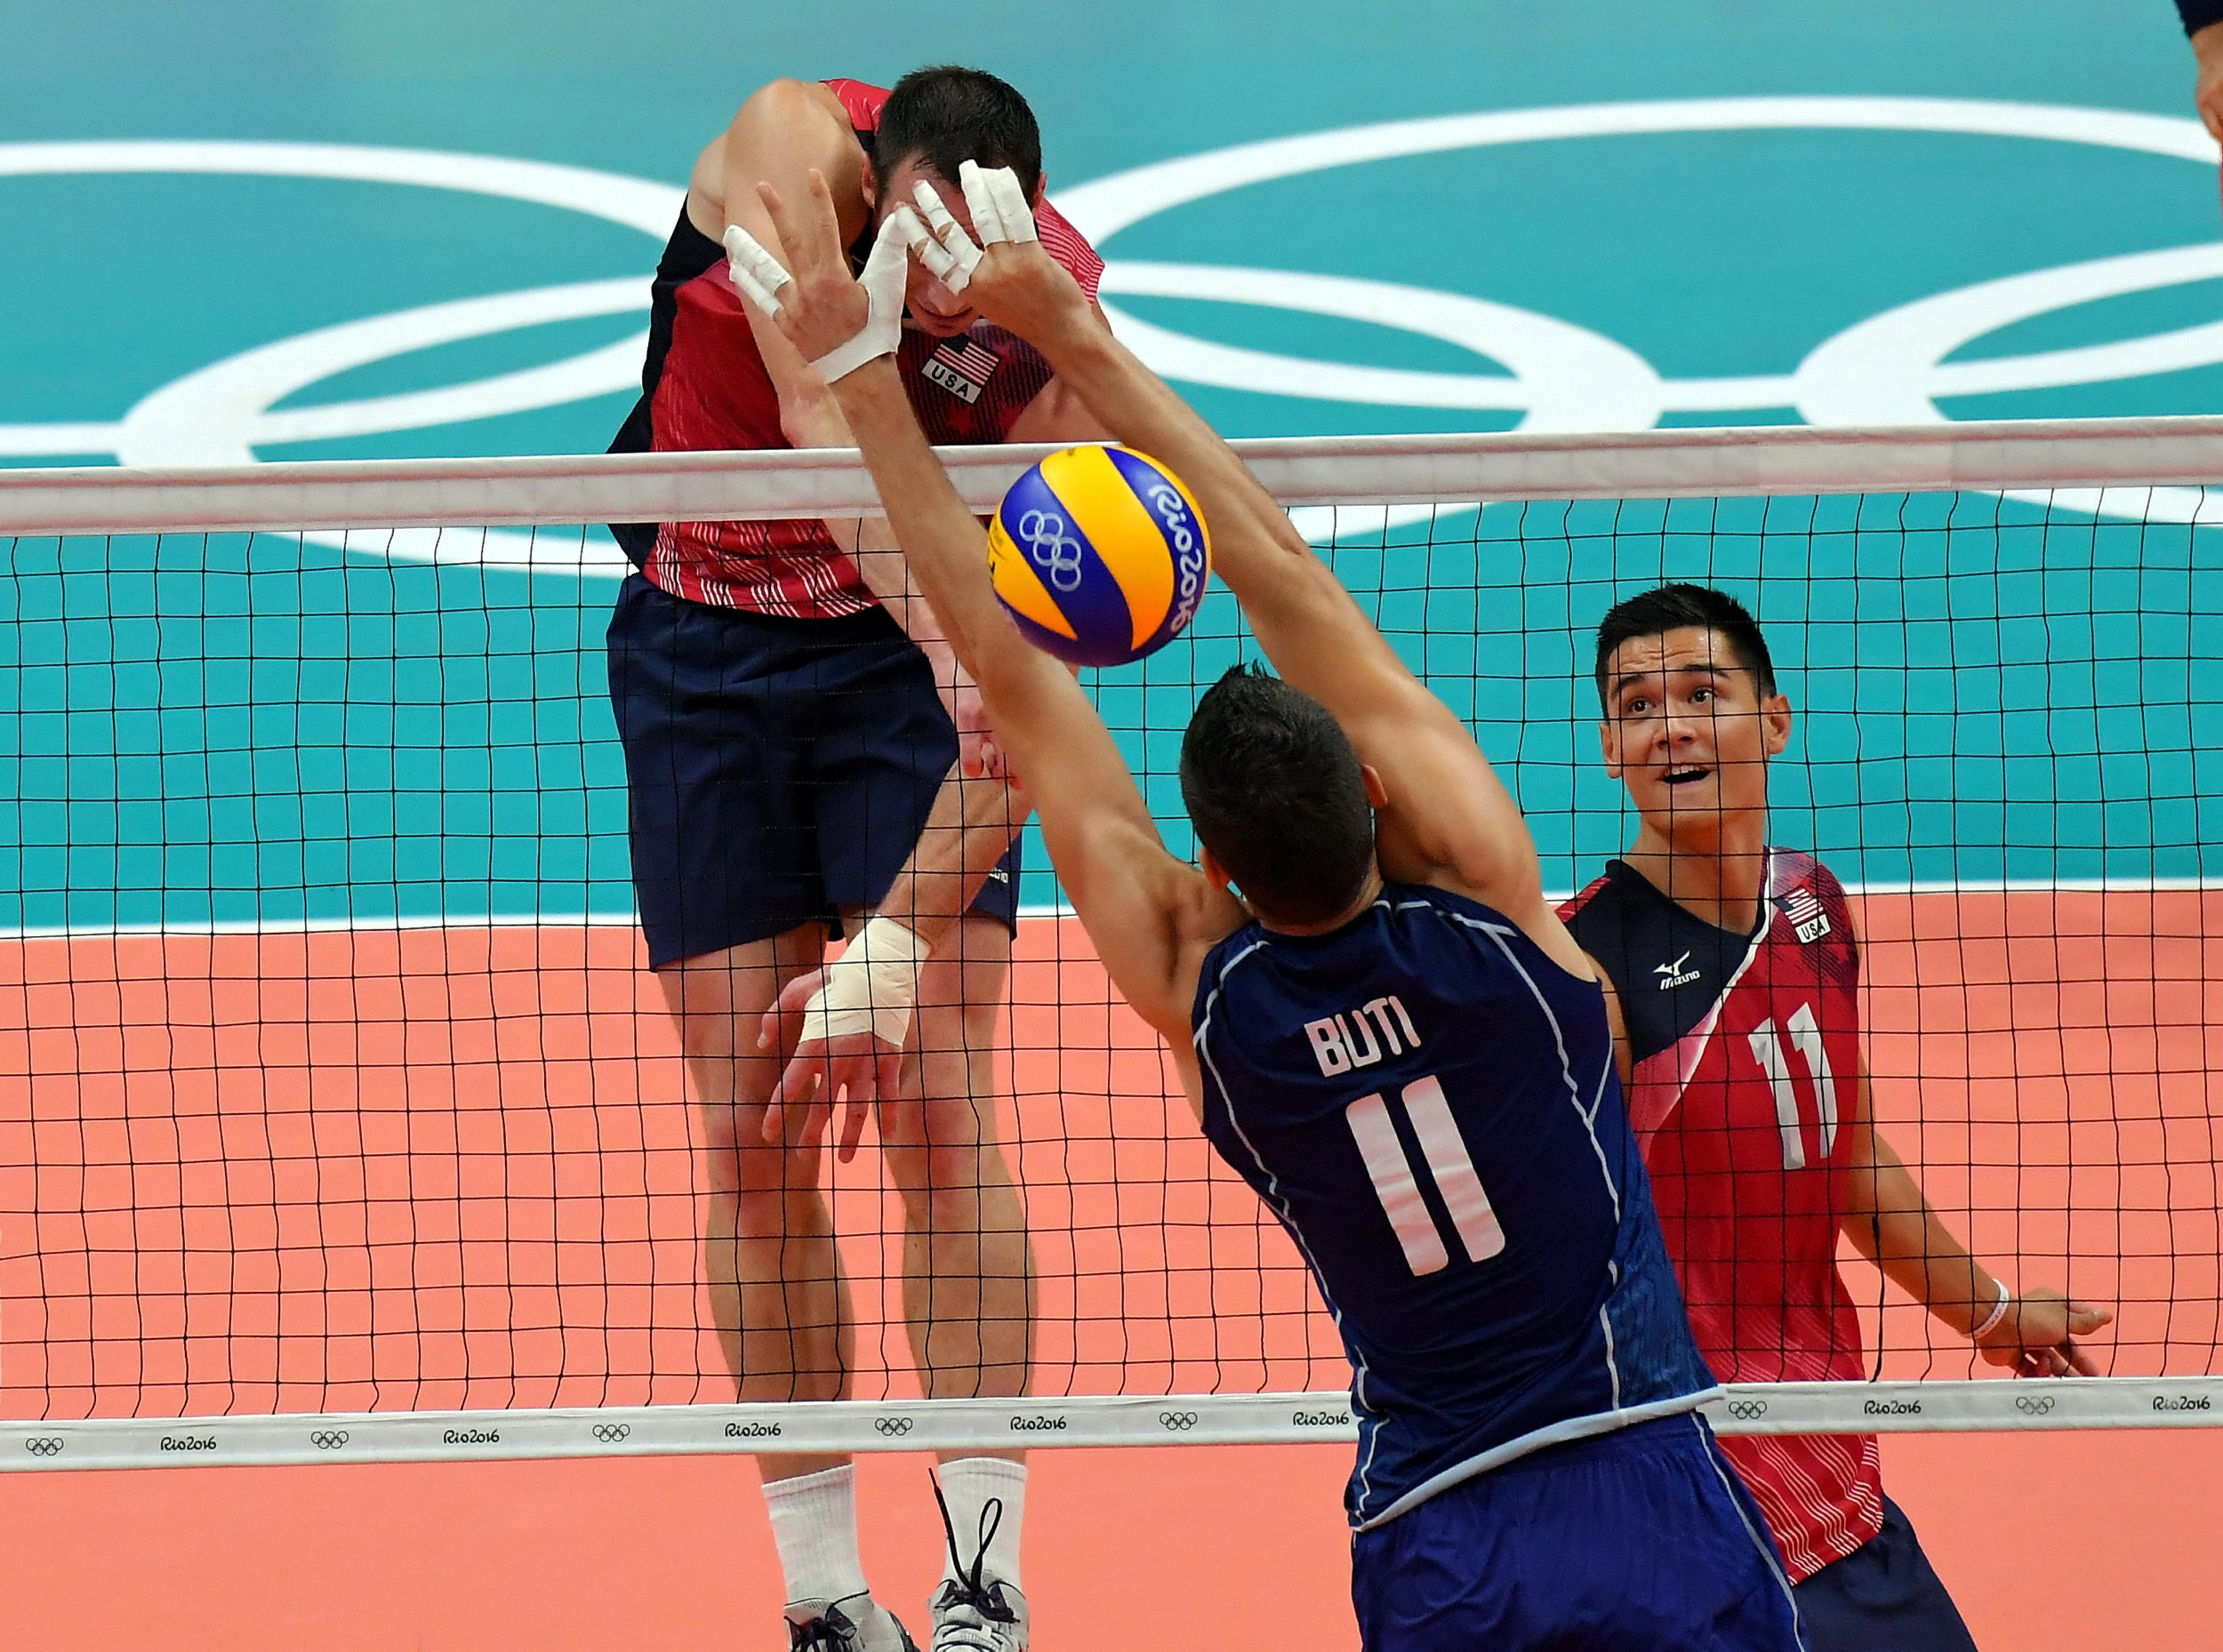 http://www.fivb.org/Vis2009/Images/GetImage.asmx?No=201653324&maxSize=960